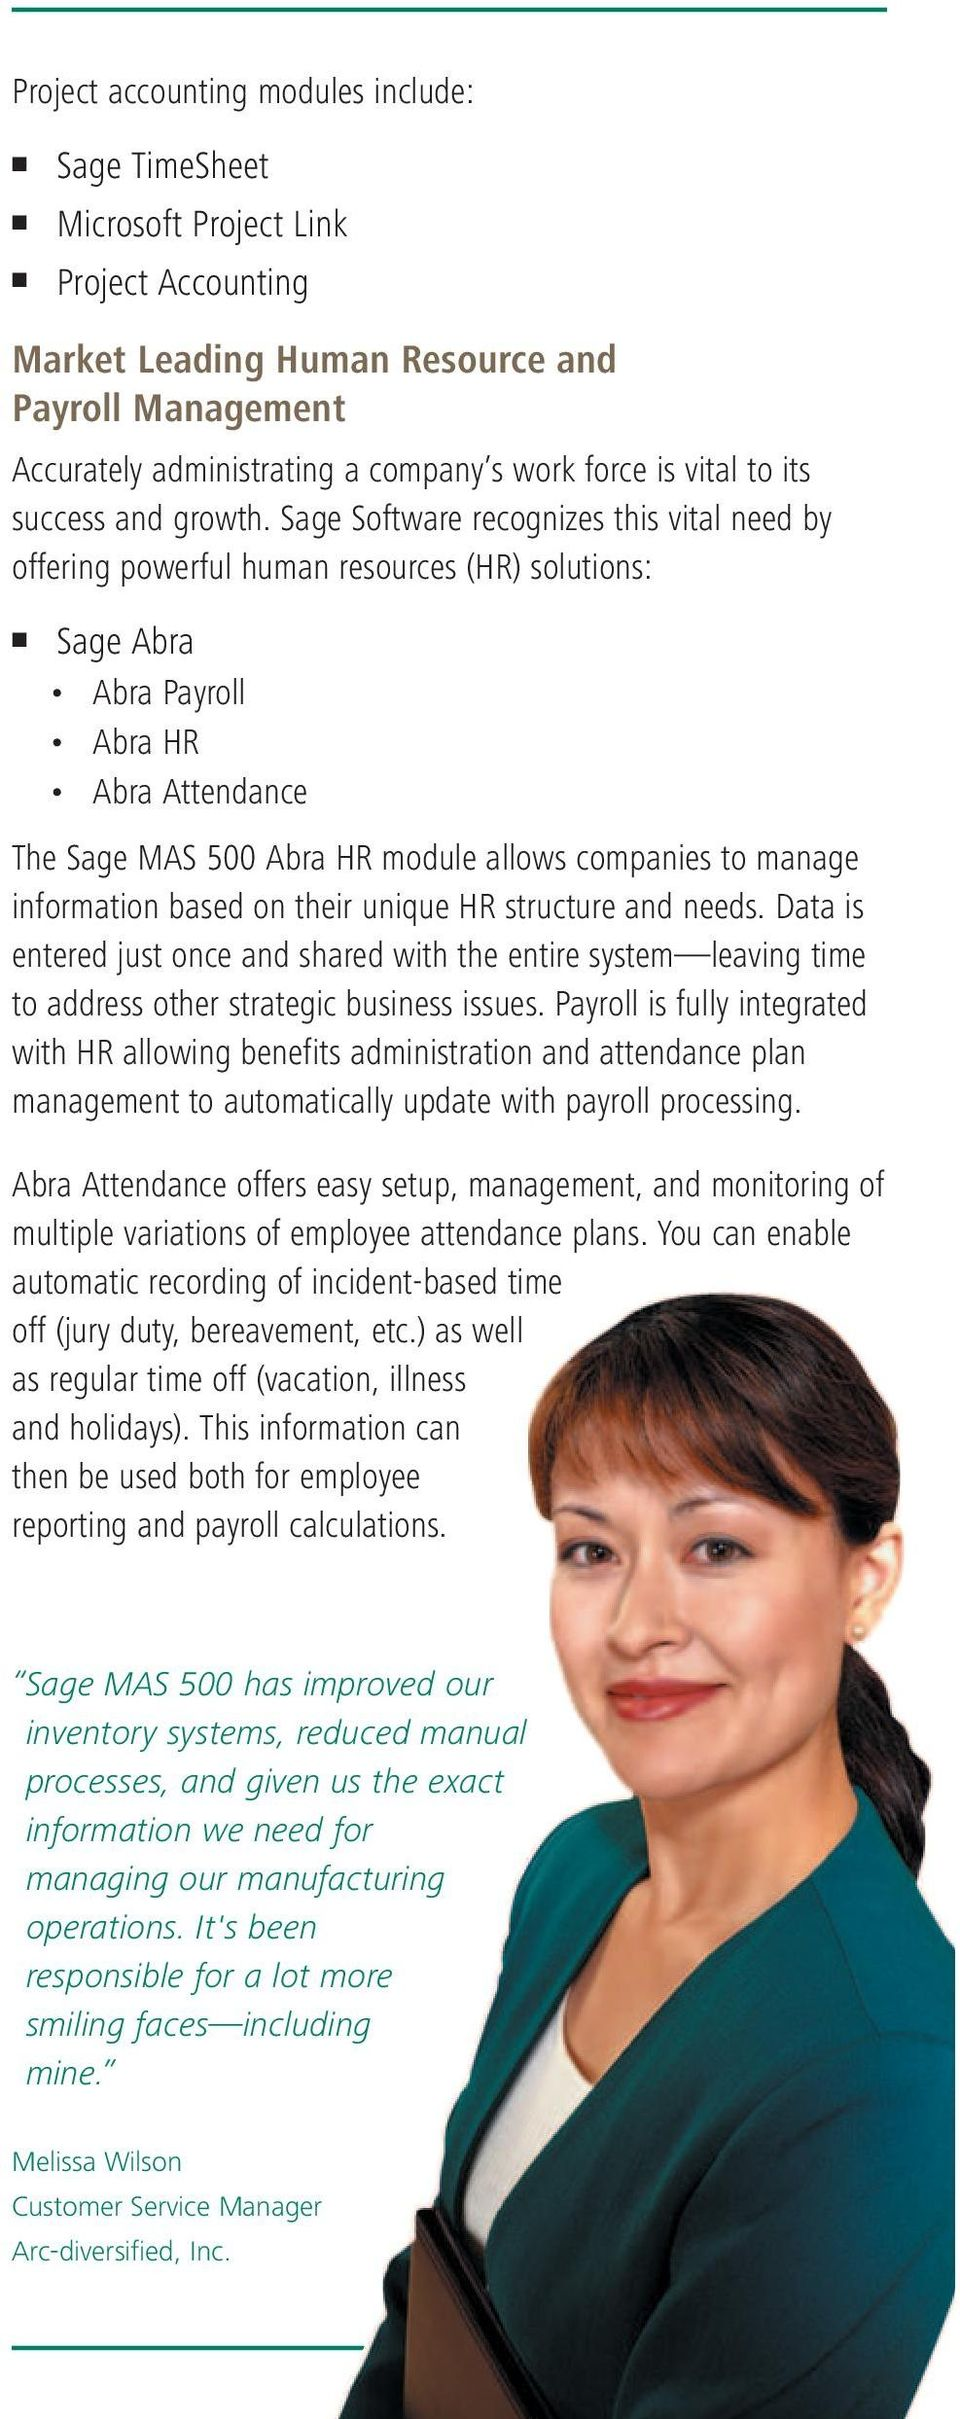 Sage Software recognizes this vital need by offering powerful human resources (HR) solutions: Sage Abra Abra Payroll Abra HR Abra Attendance The Sage MAS 500 Abra HR module allows companies to manage